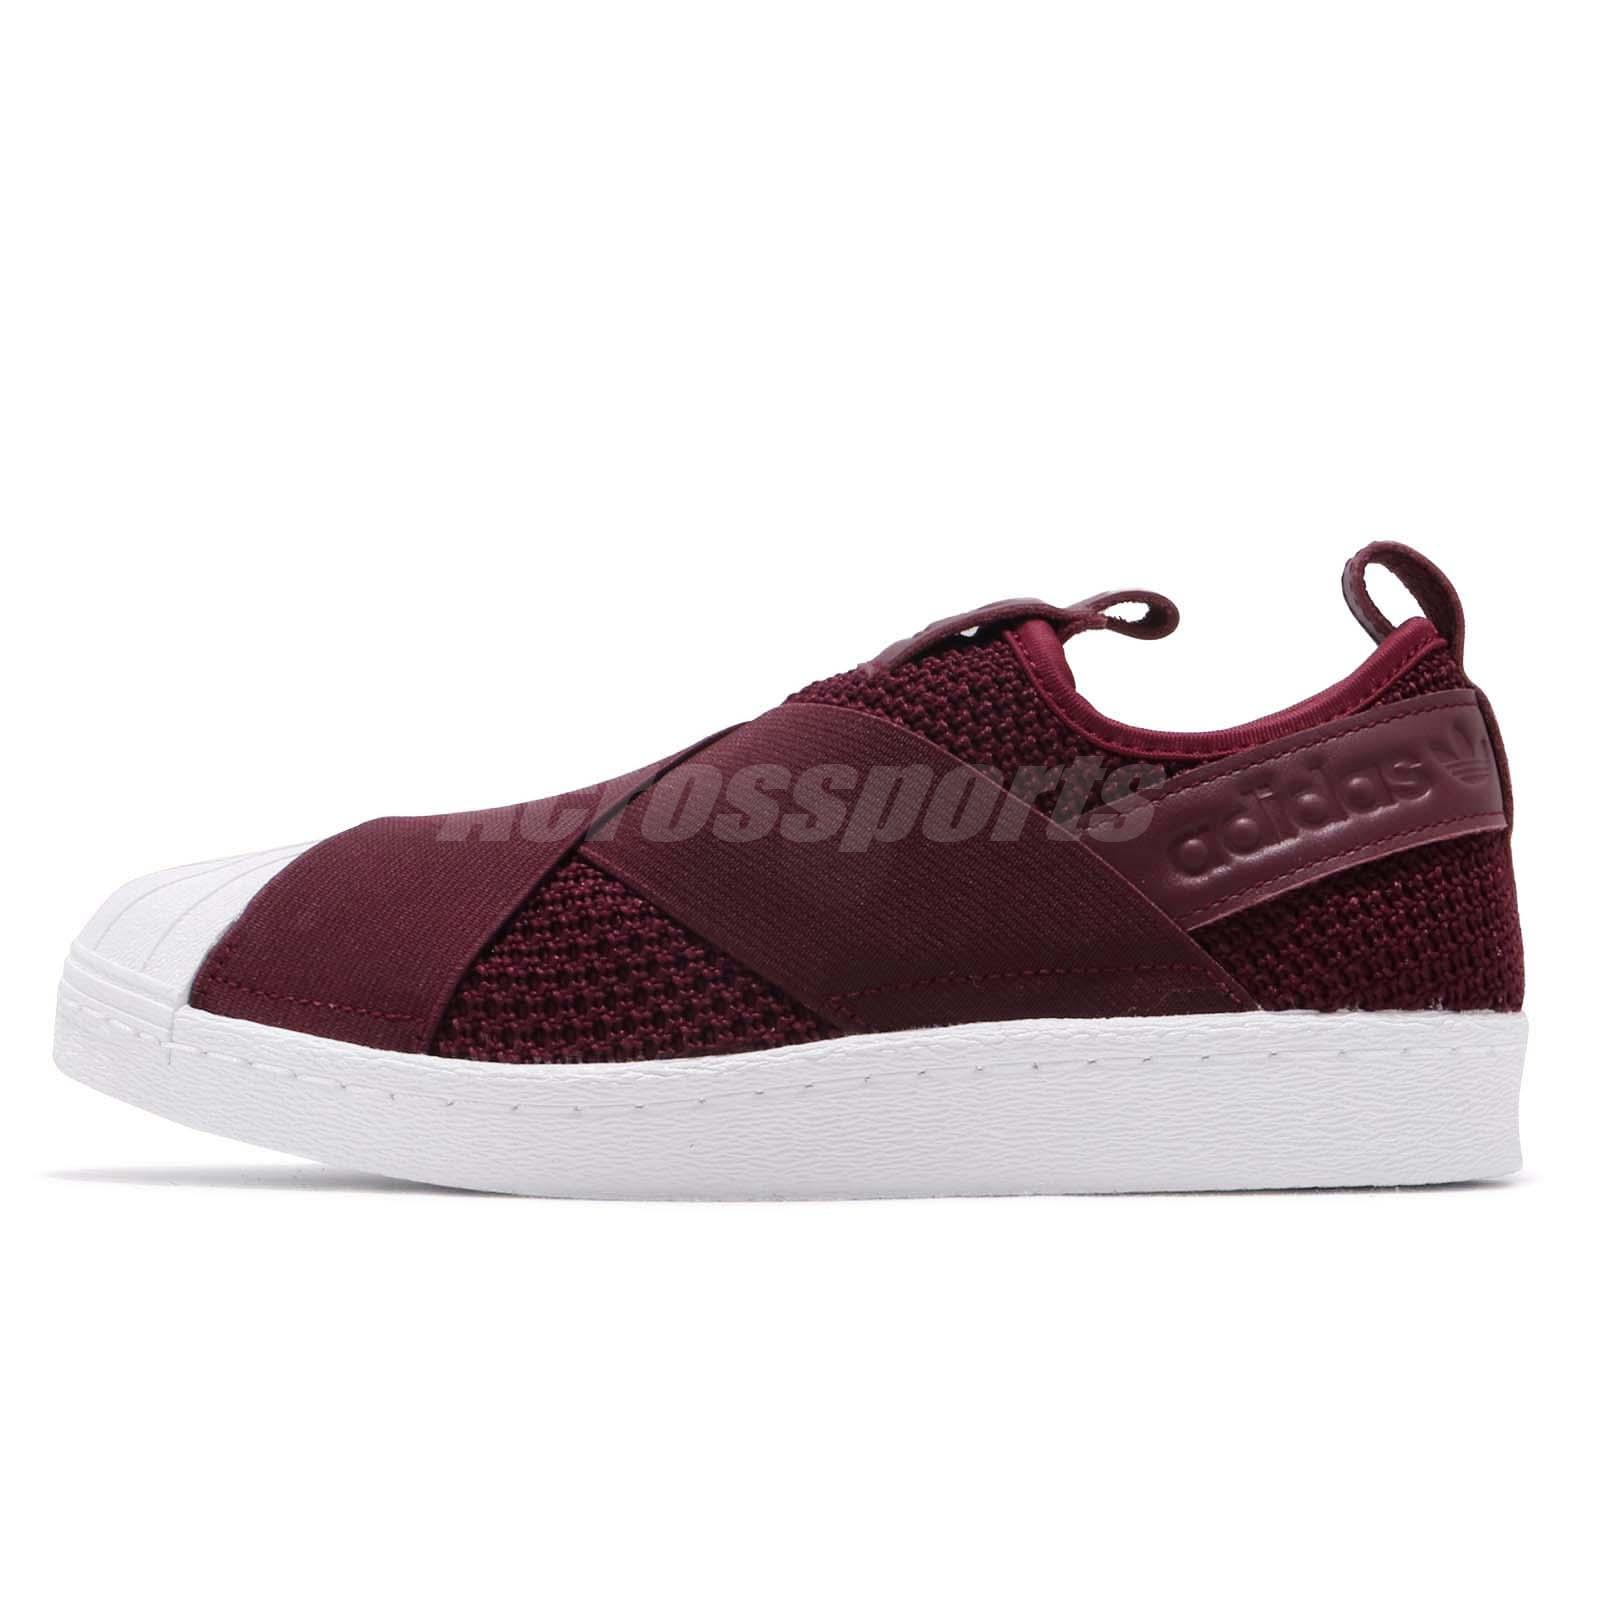 5c22a4706007 adidas Originals Superstar Slip On W Red Night White Women Casual Shoes  B37371